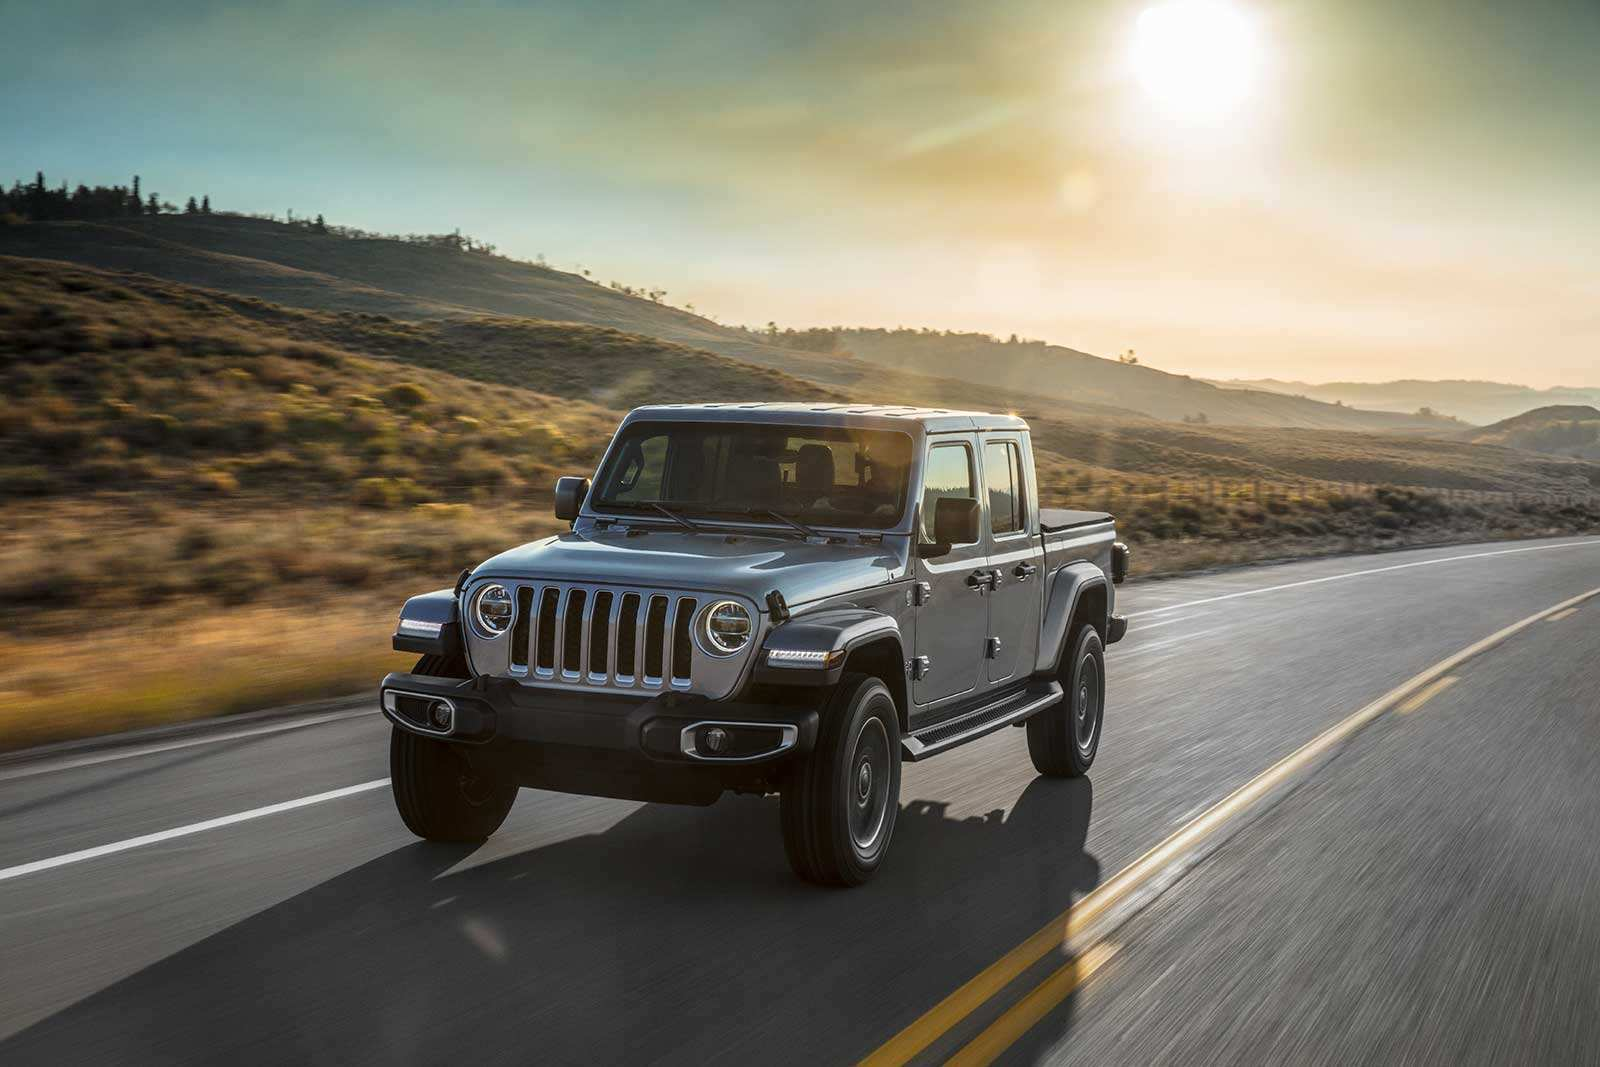 92 Best Review 2020 Jeep Gladiator Video Reviews for 2020 Jeep Gladiator Video